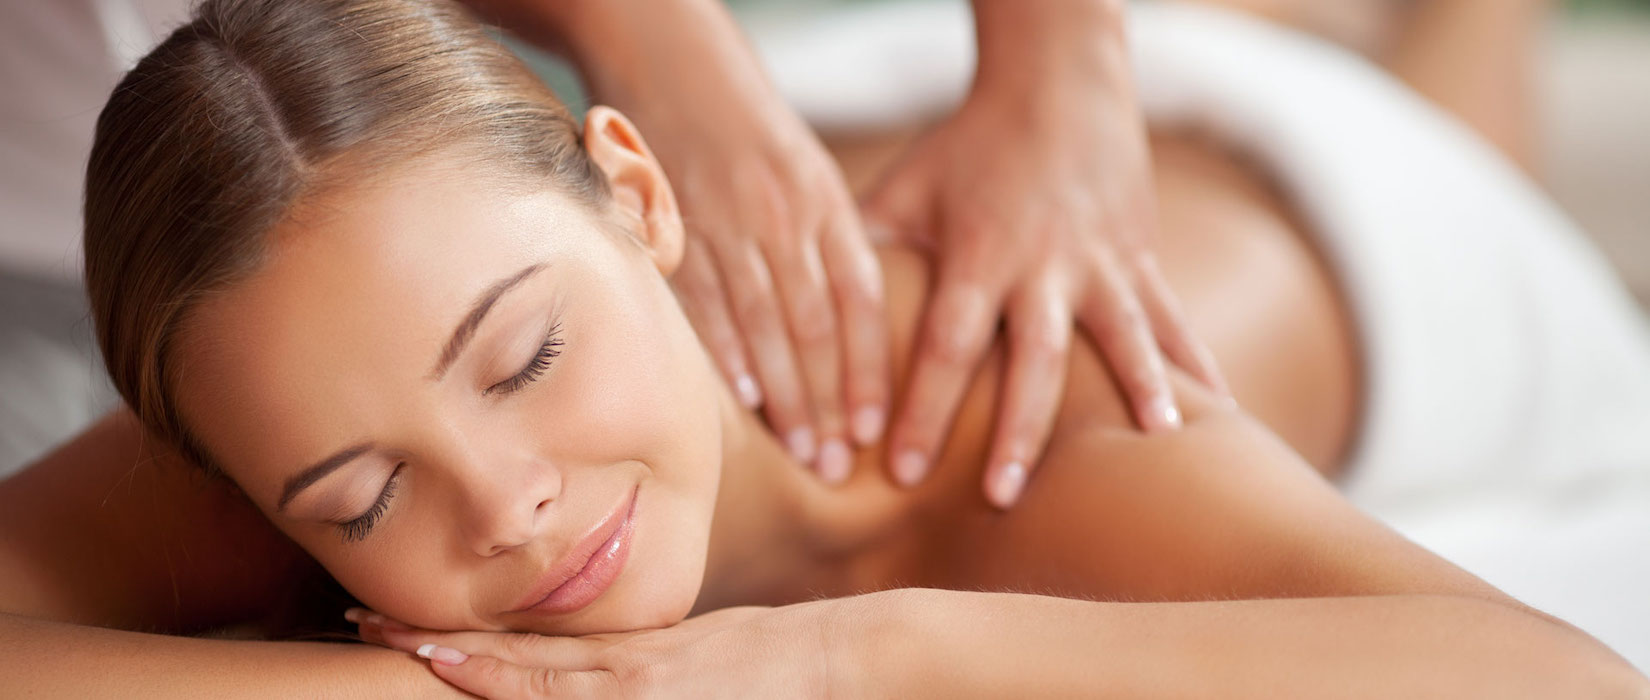 League city texas massage therapy